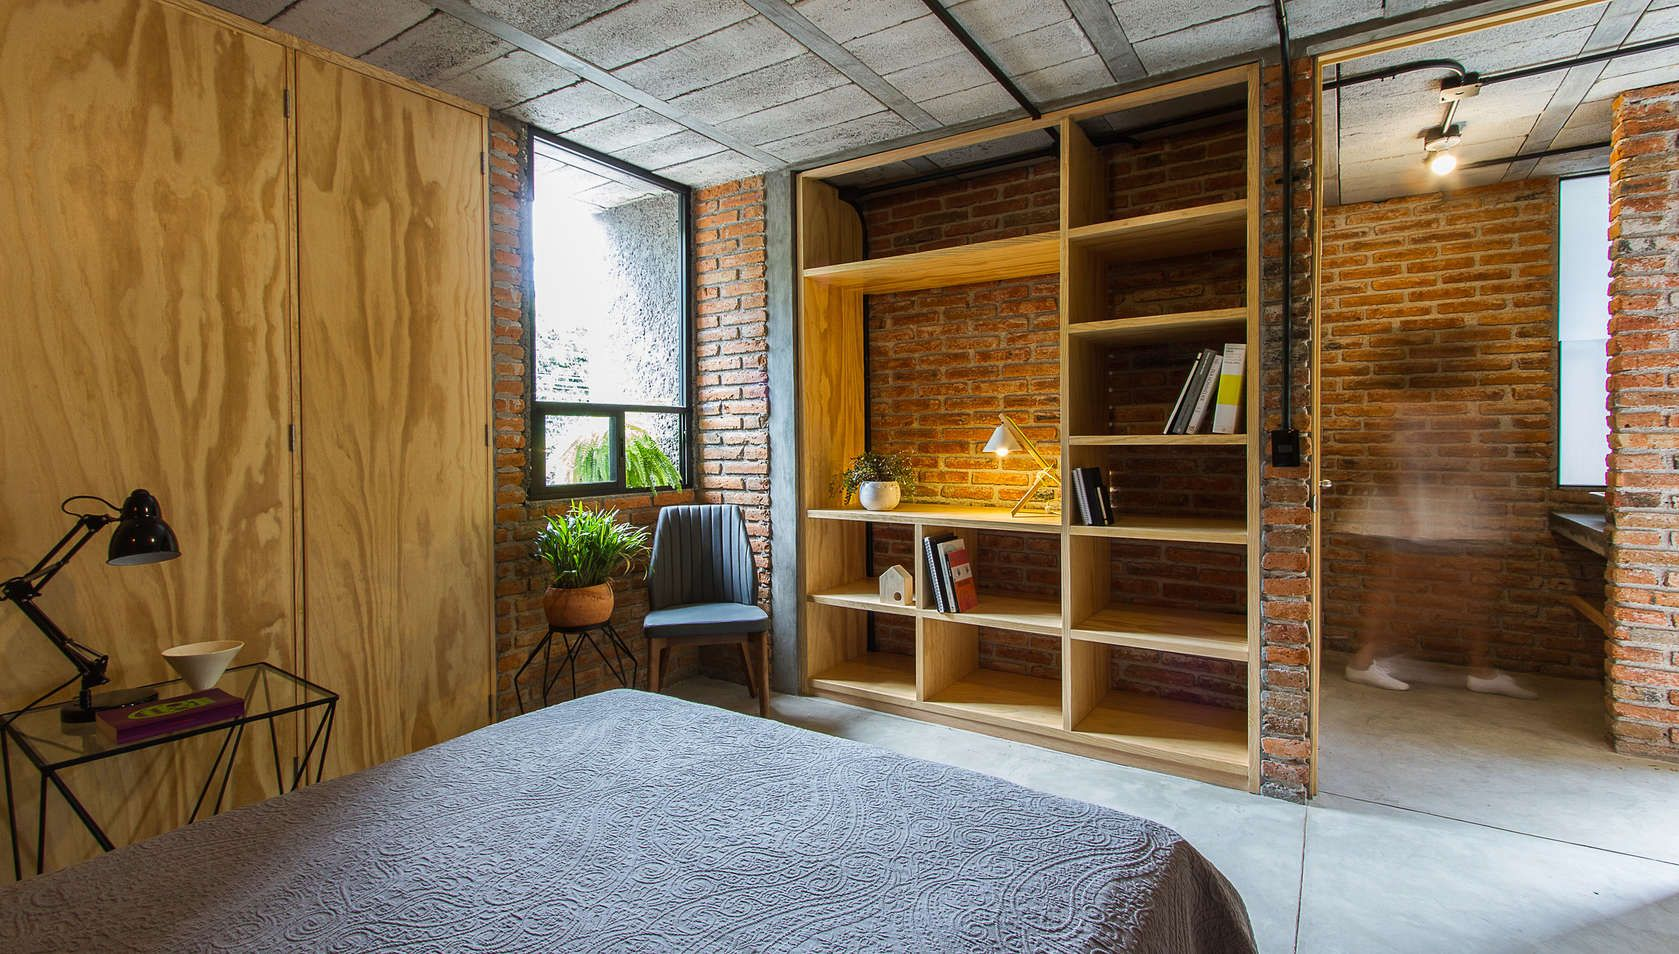 Acting As Both A Space For Living And Working, U0027Casa Estudiou0027 Is A  Modest Sized Home Located In A Micro Industrial Area Of Queretaro City.